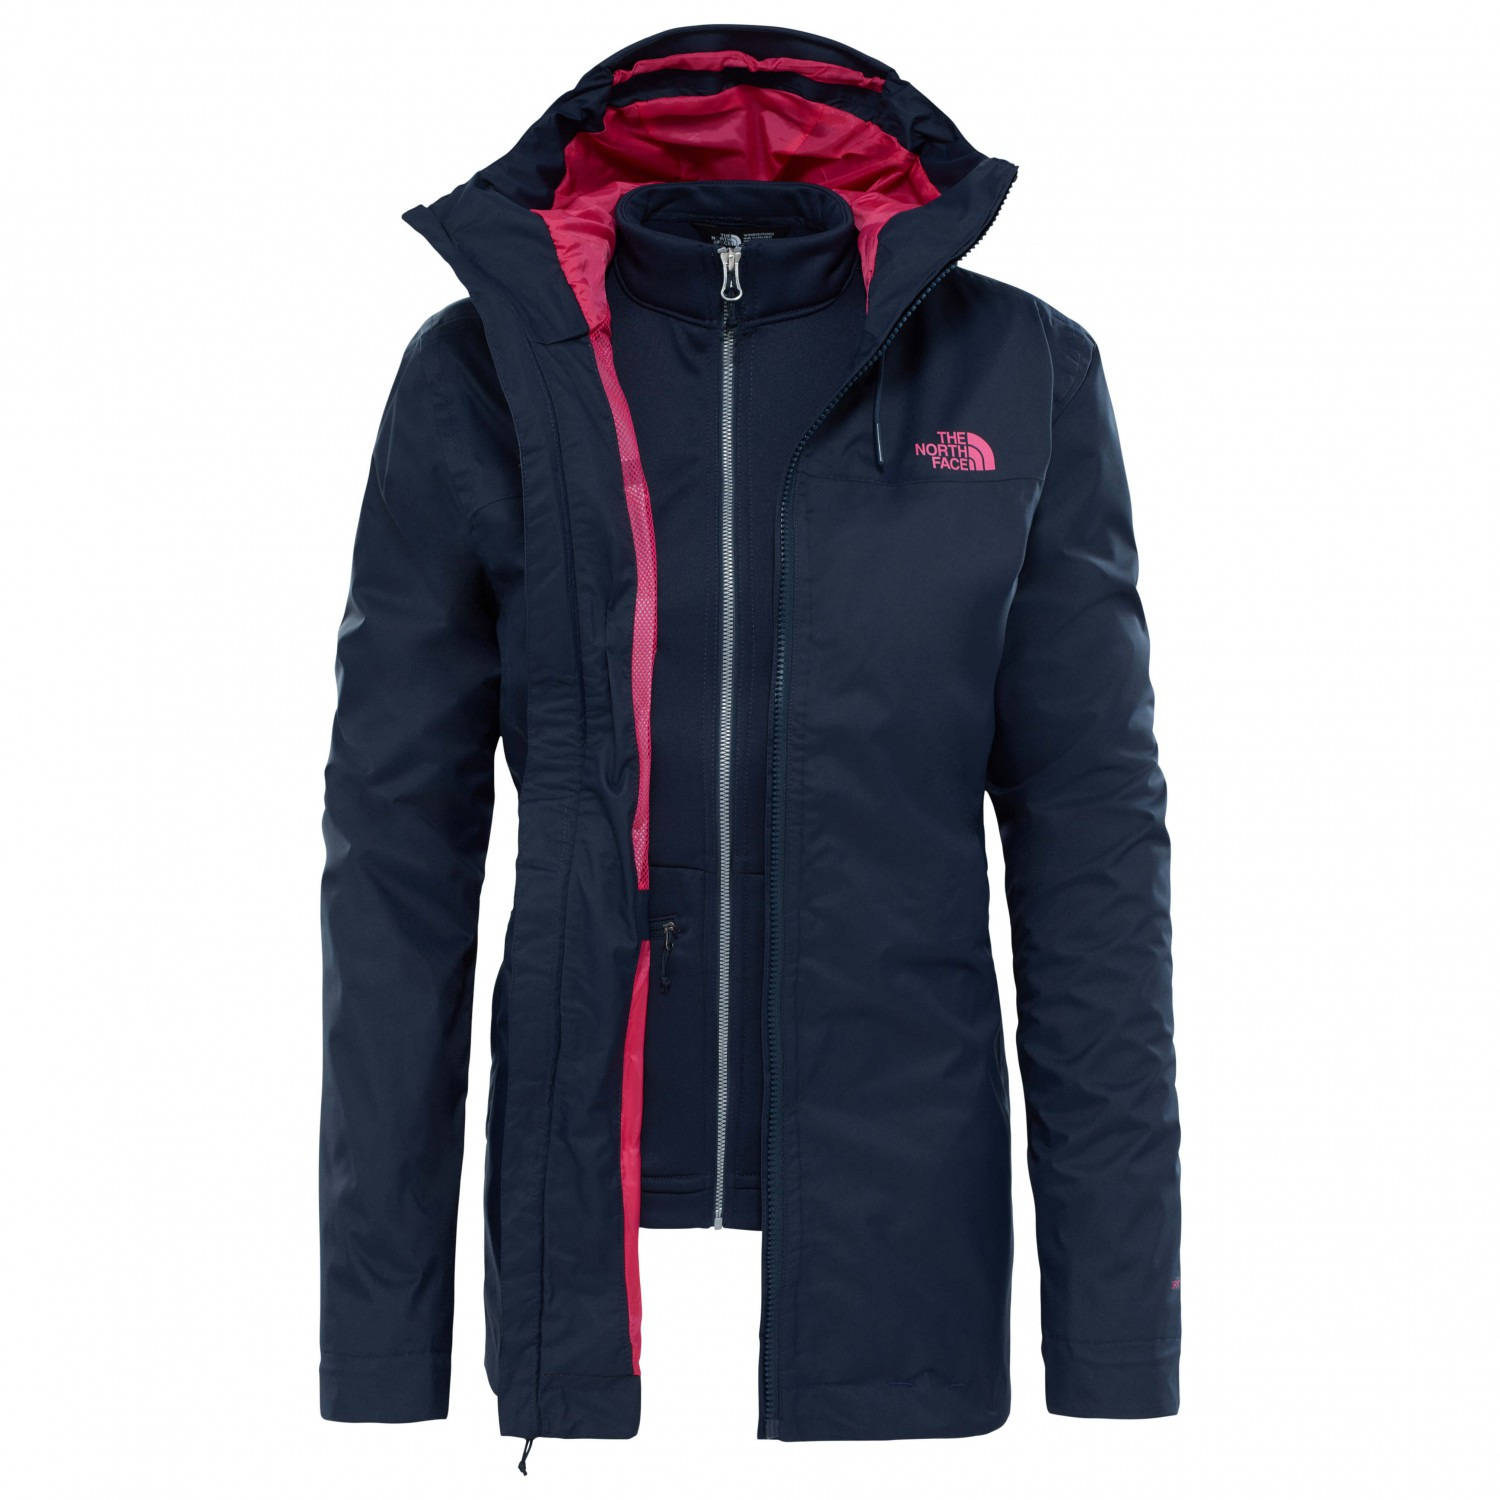 e4f120c6953b ... The North Face - Women s Morton Triclimate - 3-in-1 jacket ...